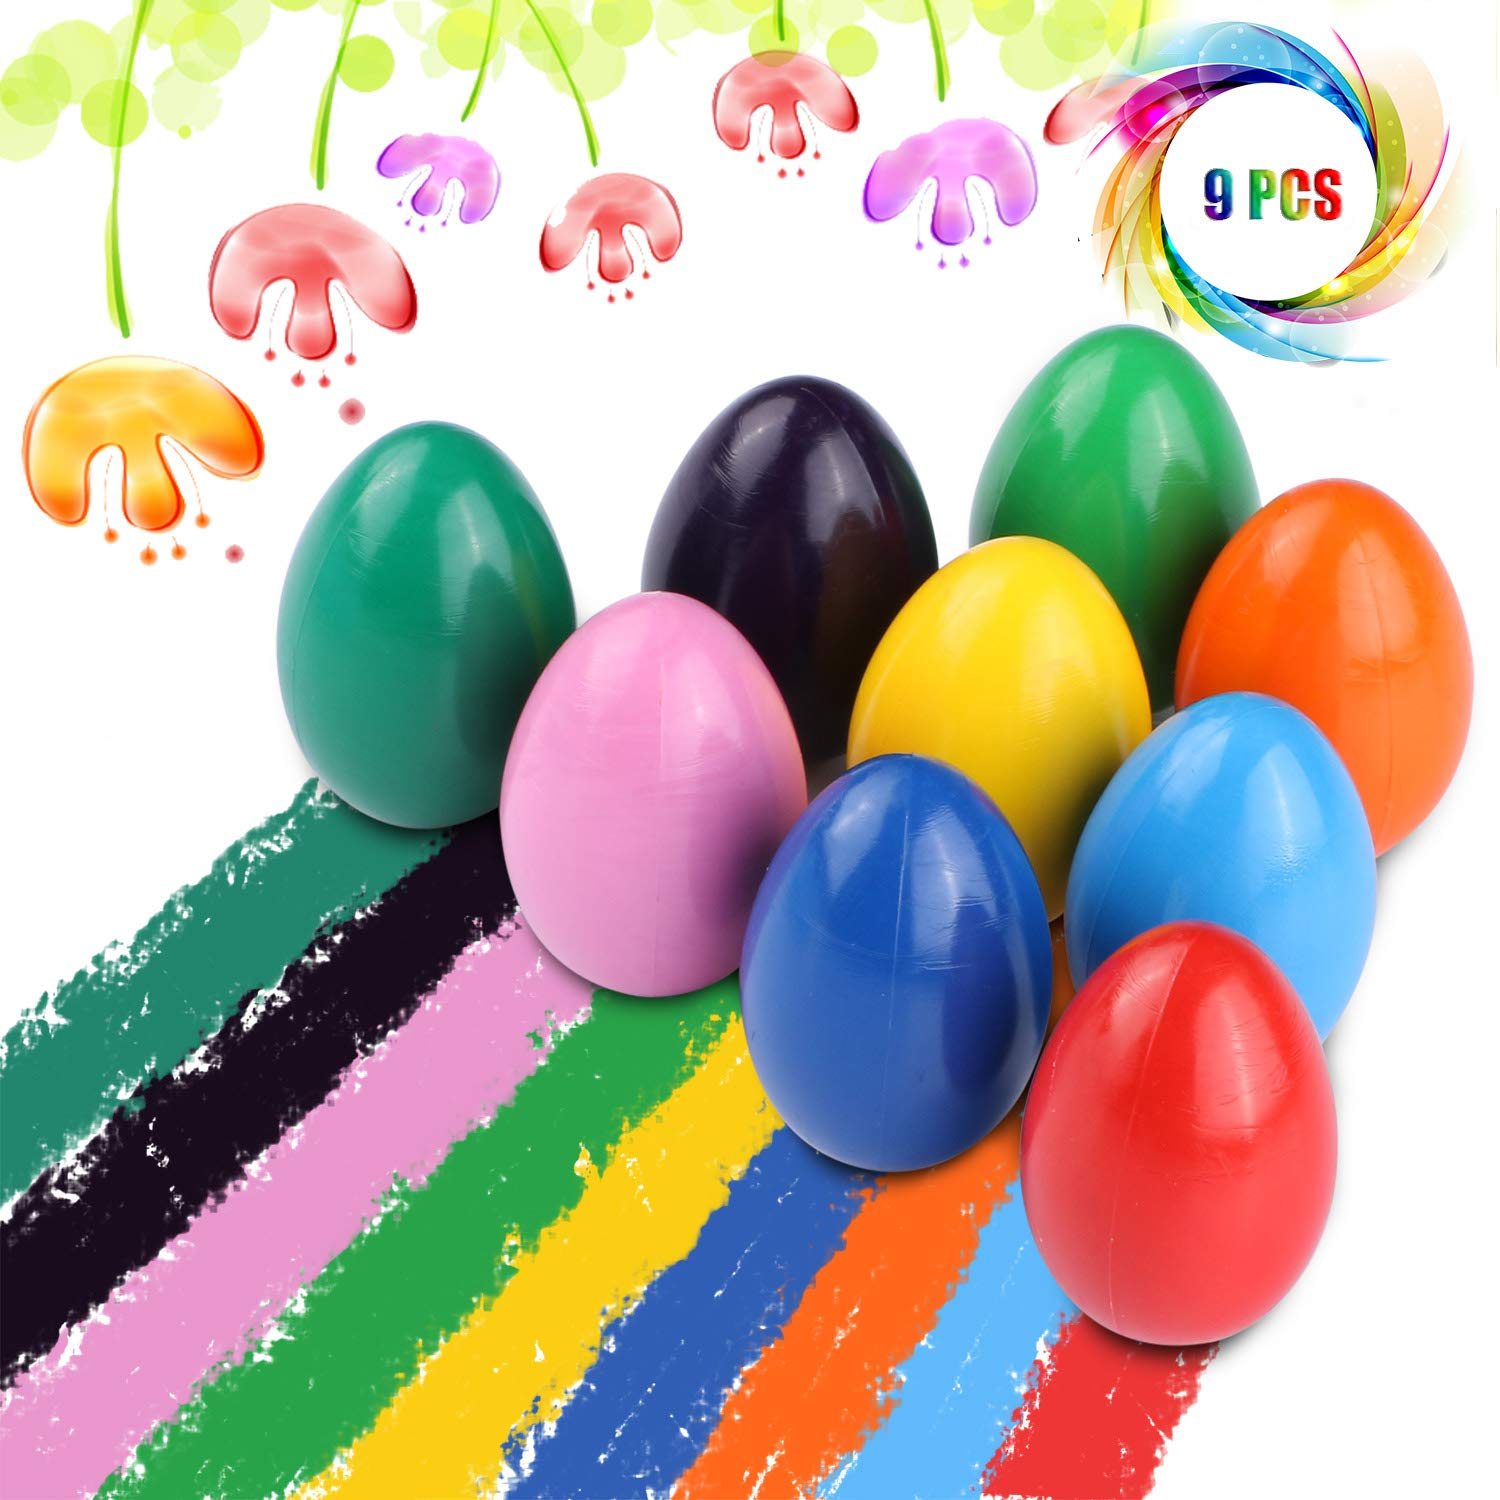 Crayons for Toddlers, Palm Grip Crayons Set 9 Colors Non Toxic Crayons Washable Paint Crayons Stackable Toys for Kids Infants, Baby,Children,Boys and Girls(egg-shaped) by Tencoz